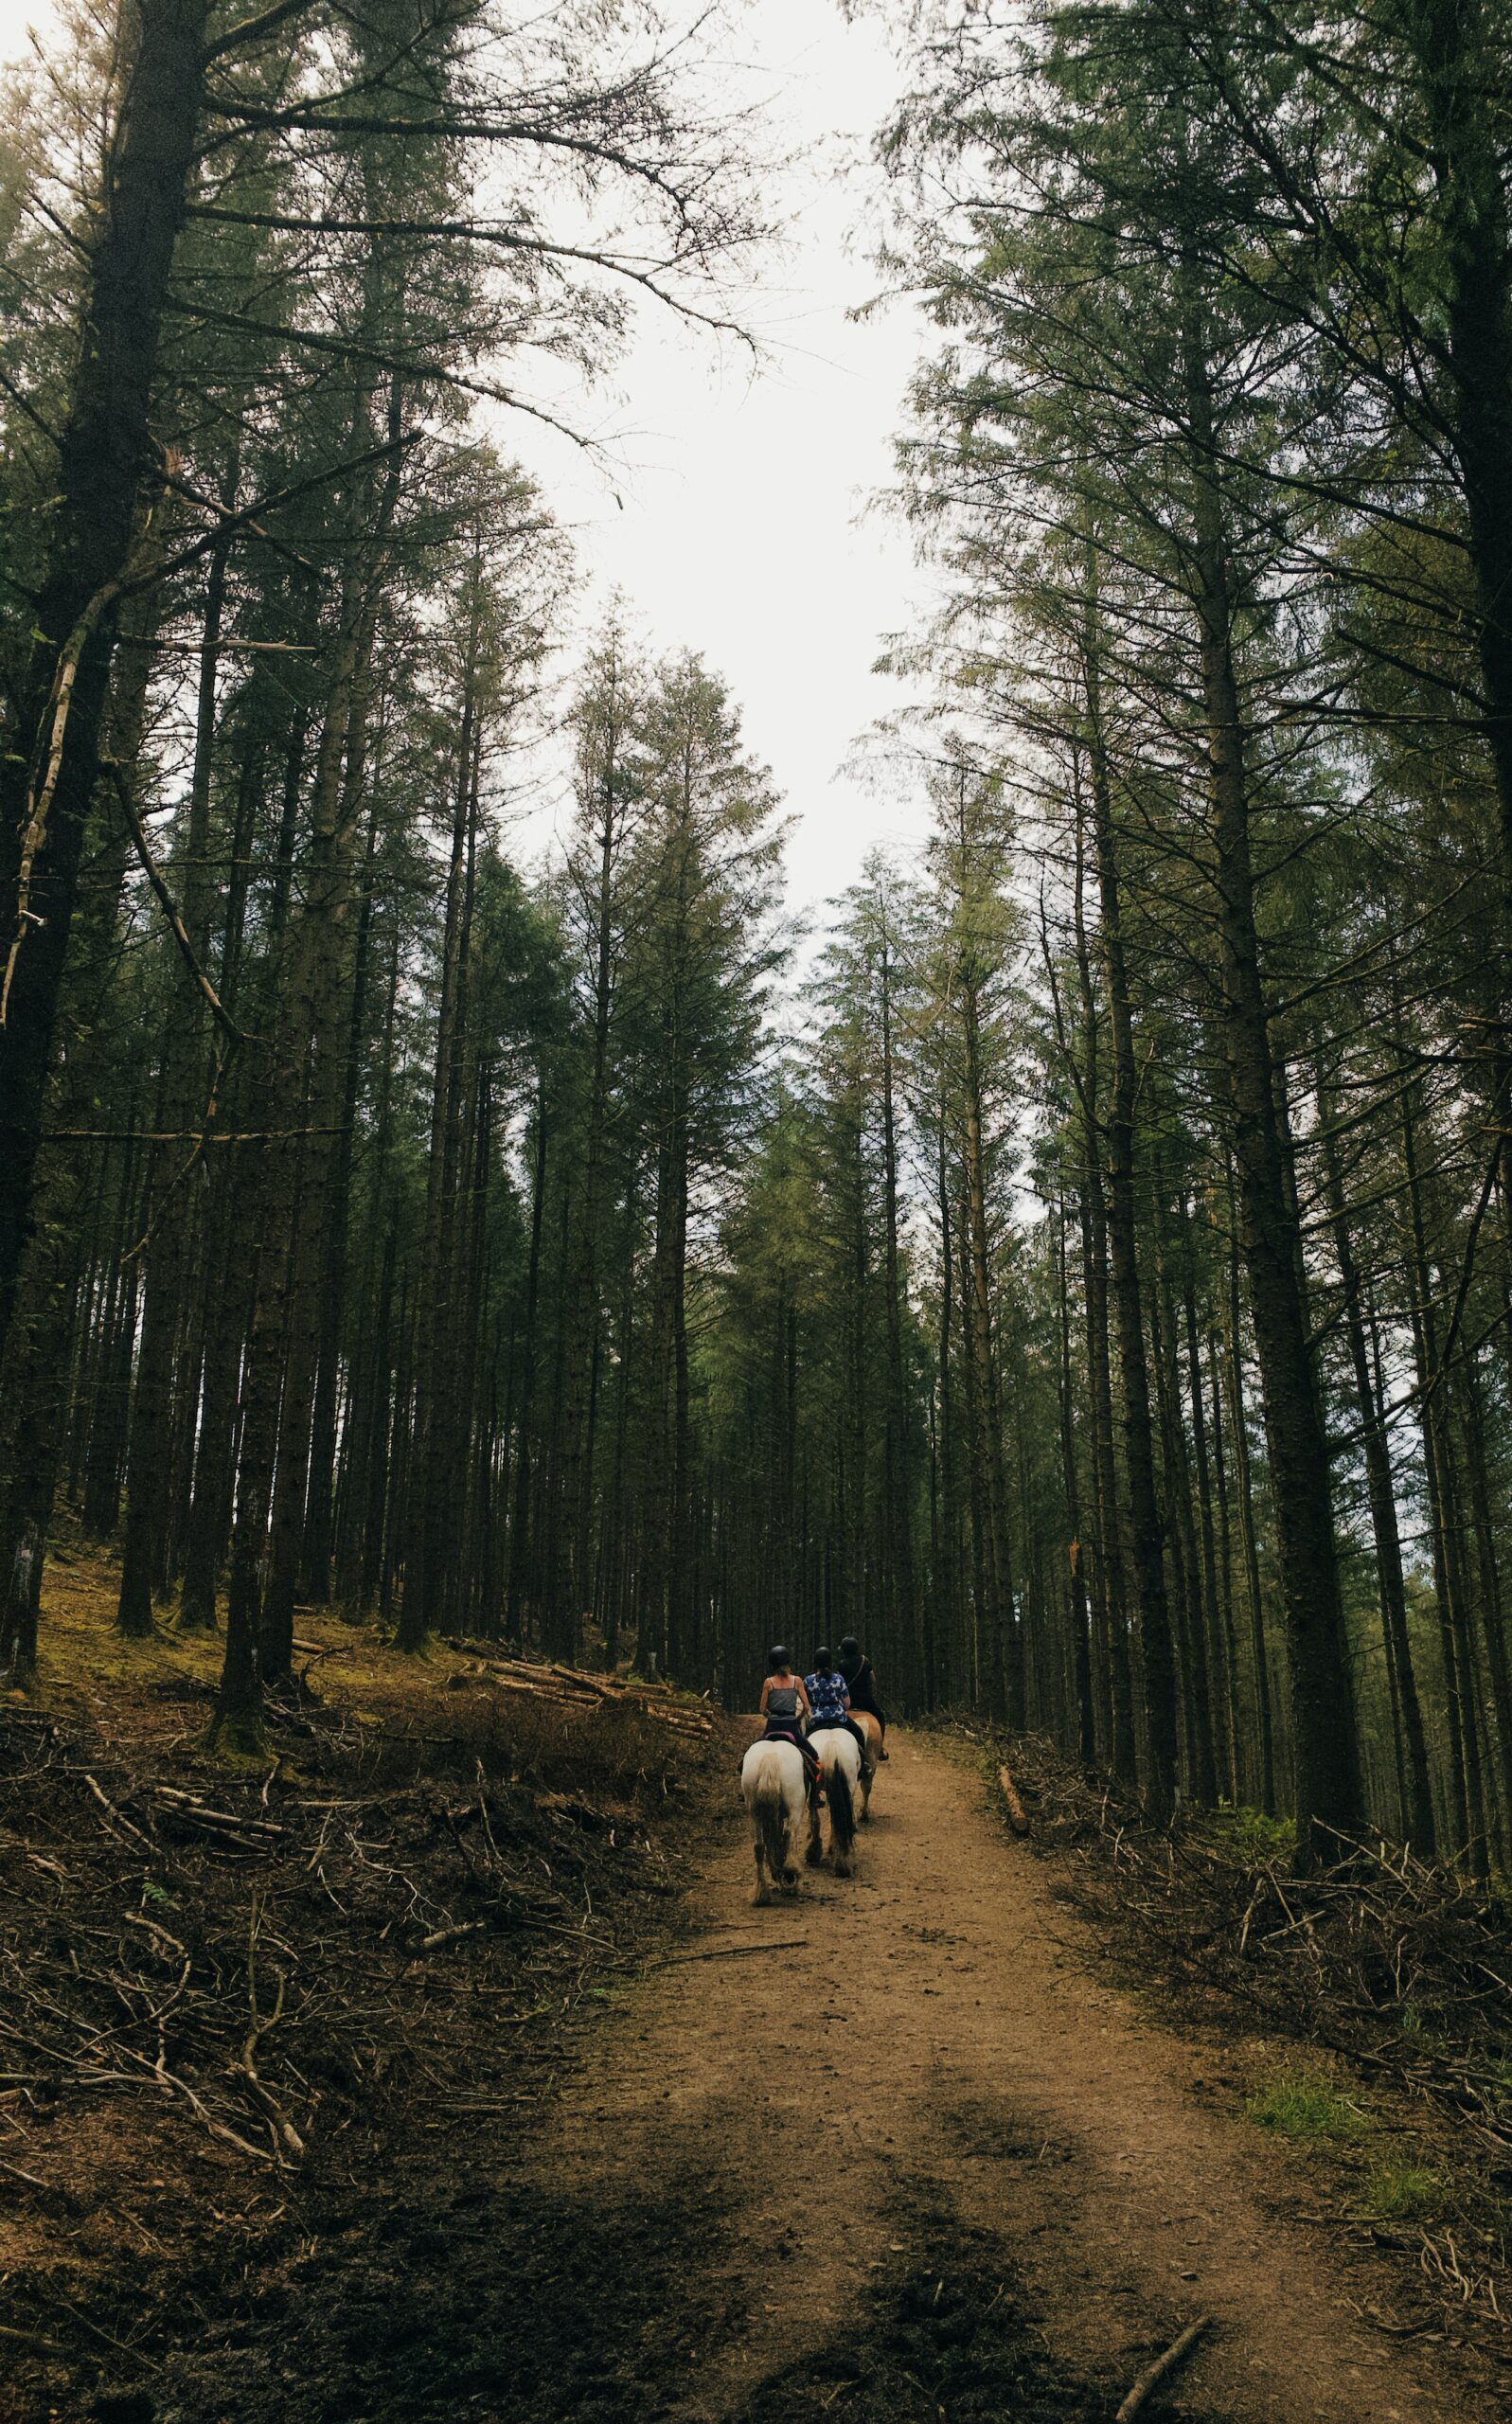 Tips for trail riding during hunting season